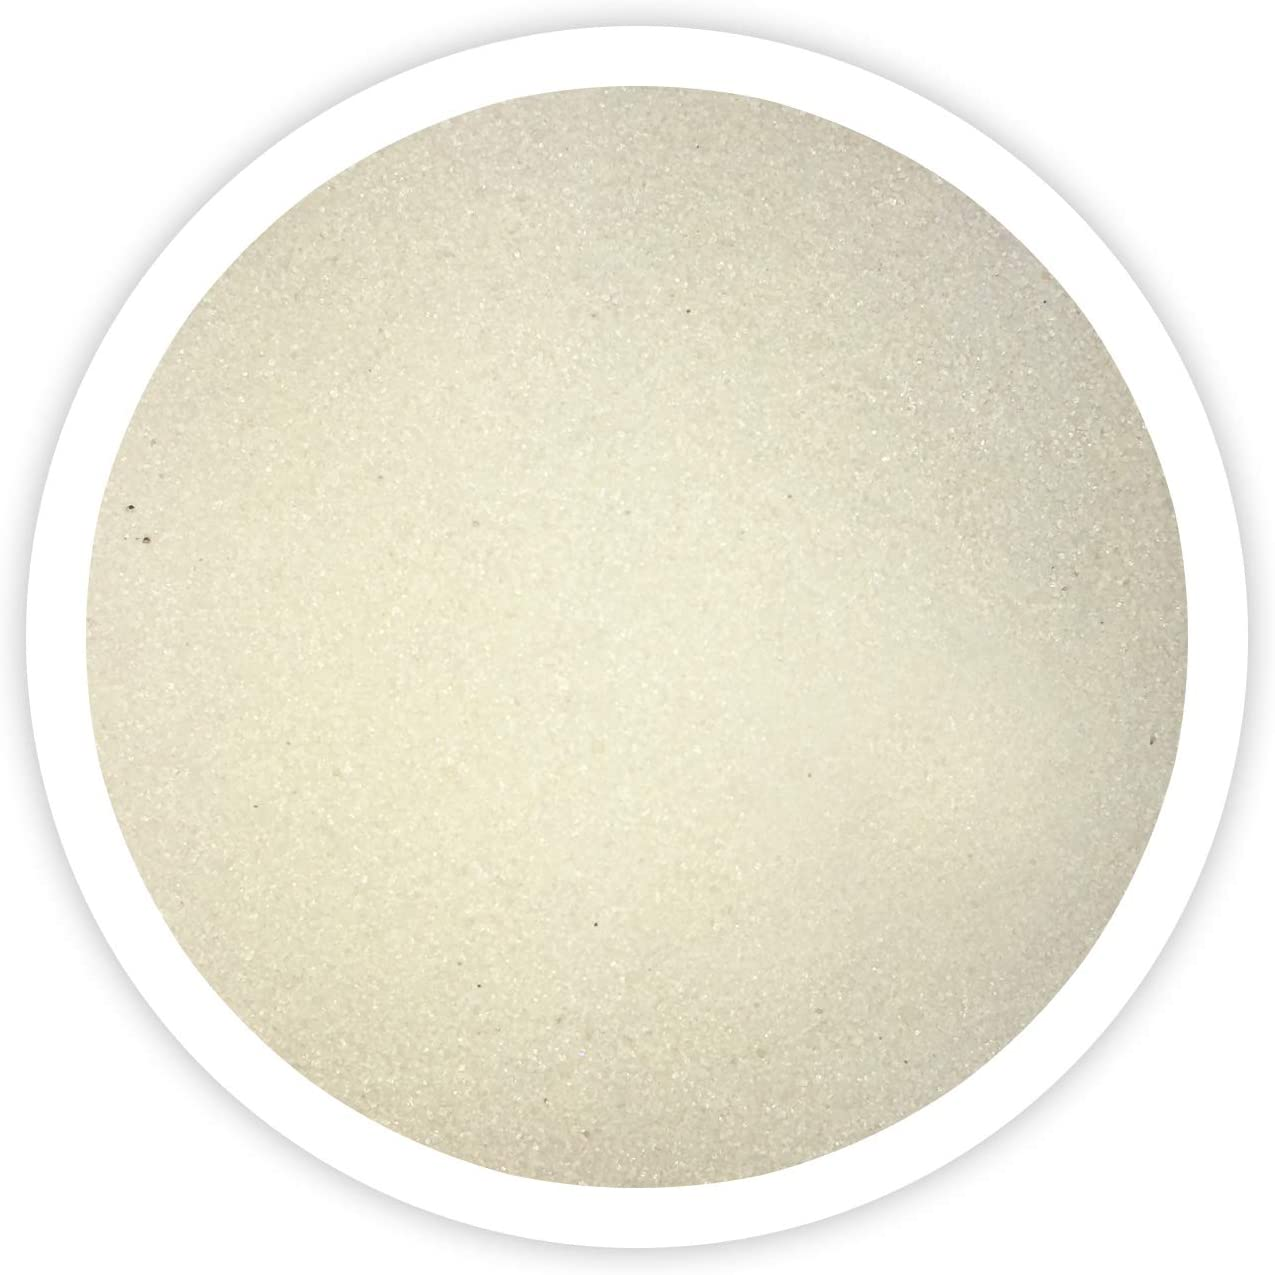 Sandsational Ivory (Butter) Unity Sand~1.5 lbs (22oz), Cream Colored Sand for Weddings, Vase Filler, Home Décor, Craft Sand